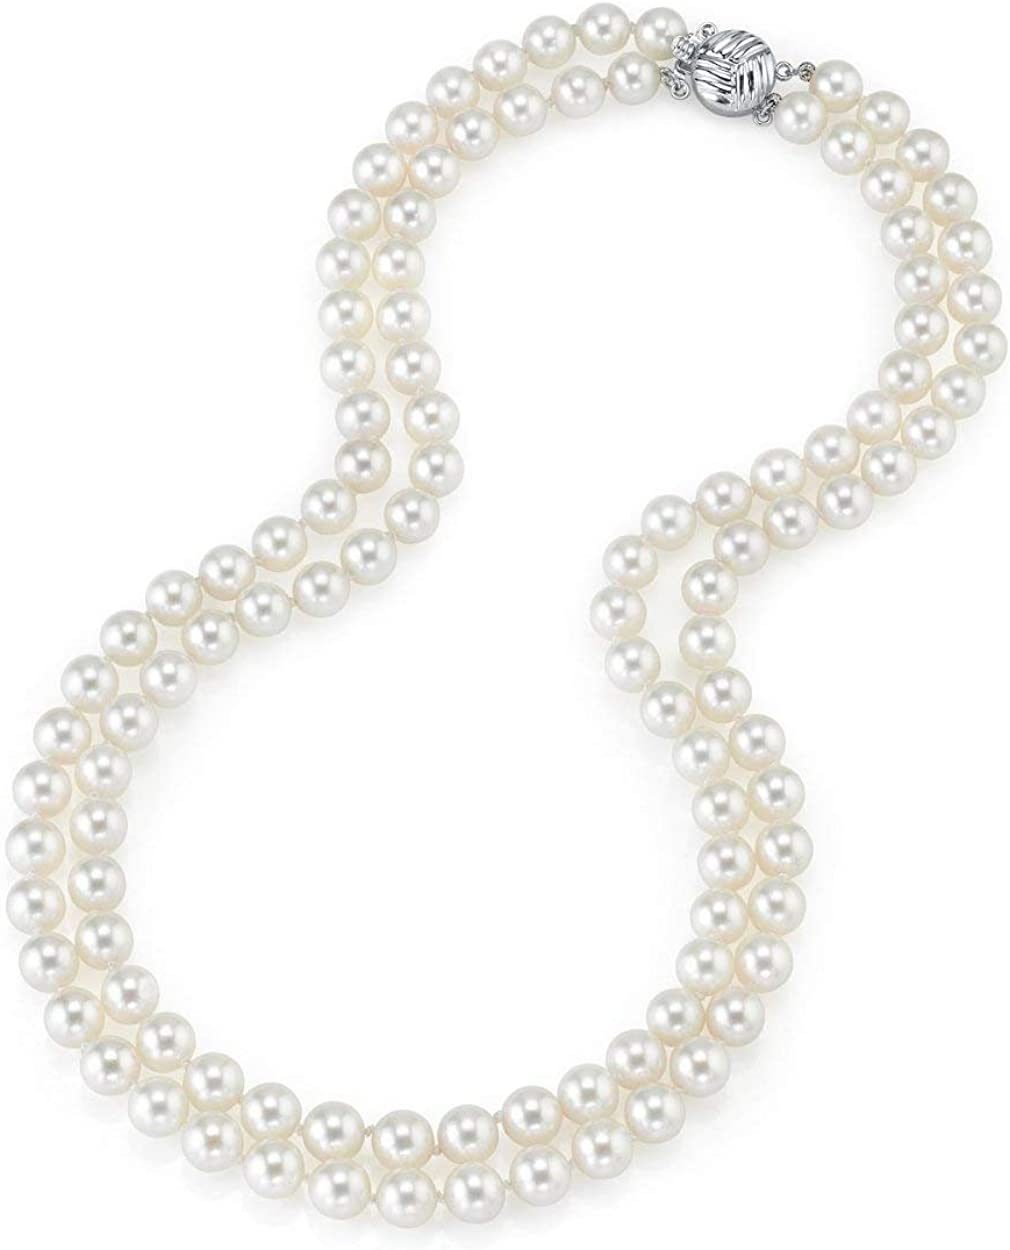 THE PEARL SOURCE 14K Gold 7-8mm AAA Quality Double Strand White Freshwater Cultured Pearl Necklace for Women in 18-19